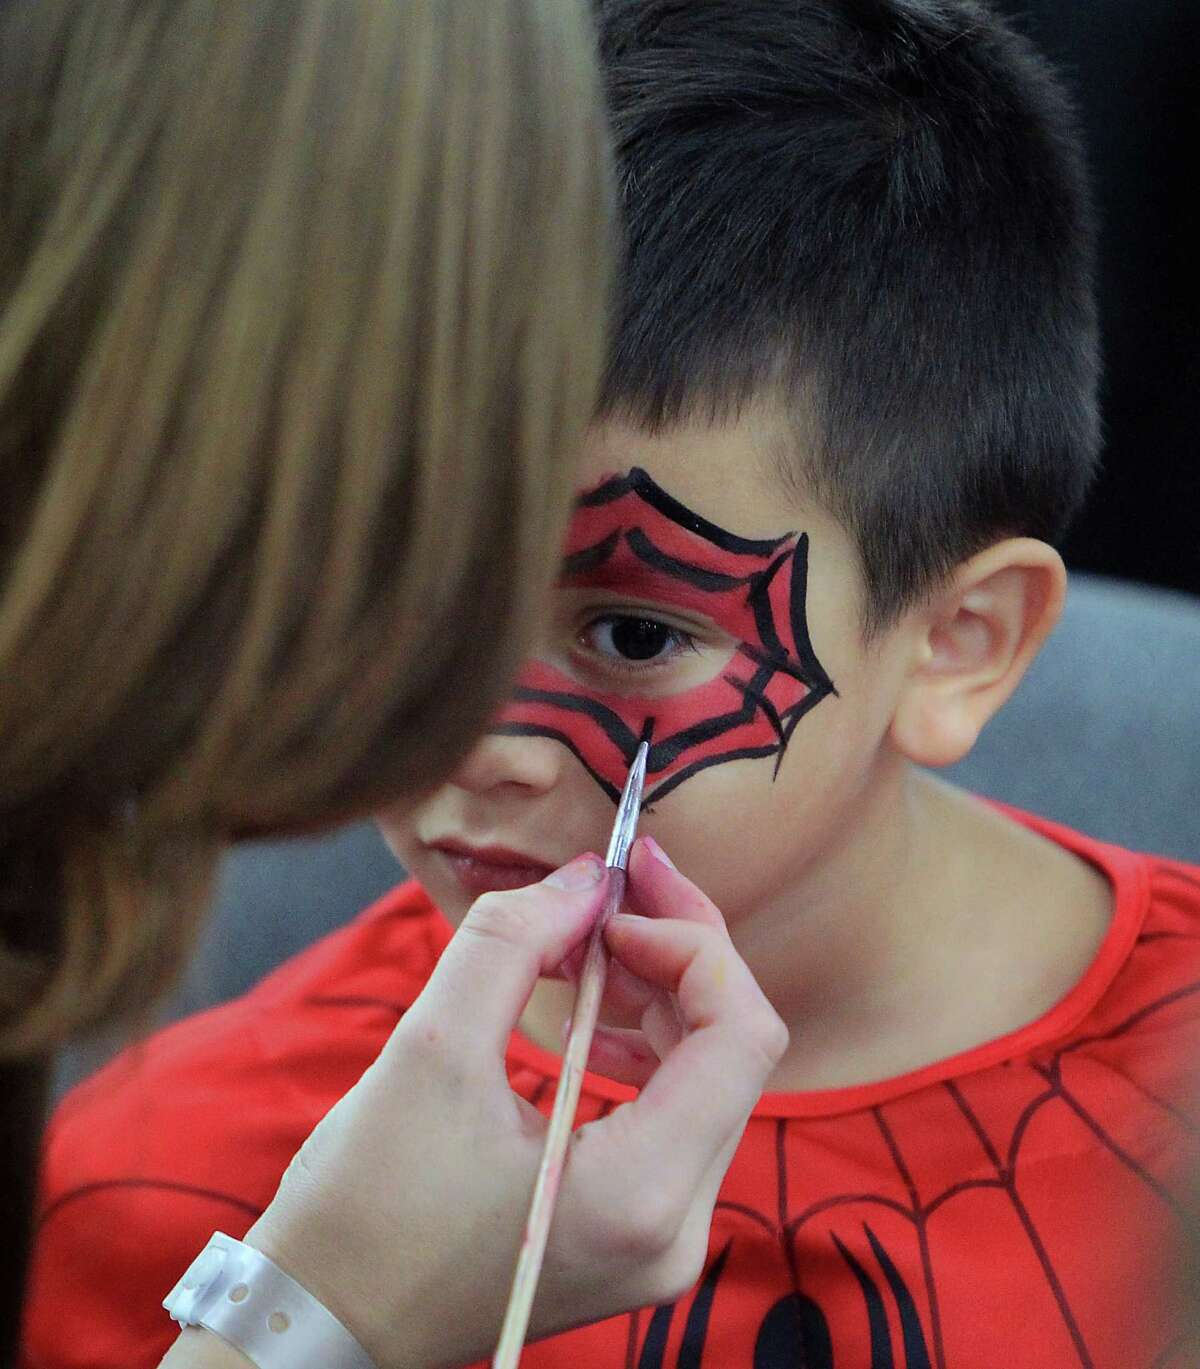 Four-year-old Michael Thornton has his face painted during the Amazing Houston Comic Con convention at George R Brown Convention Center Sunday, Aug. 31, 2014, in Houston.